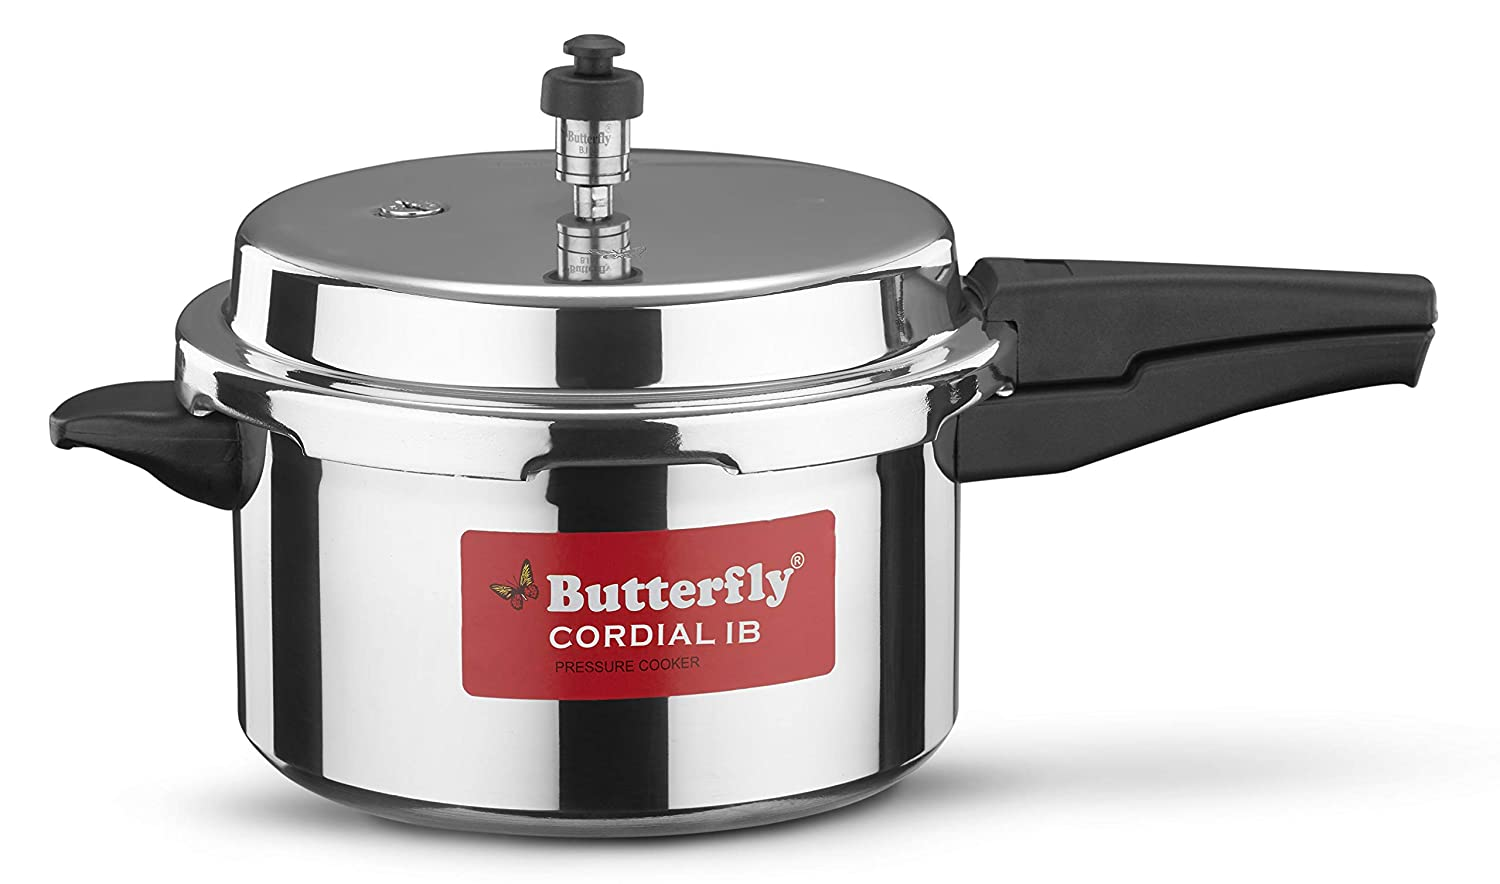 Butterfly Cordial Induction Base Aluminium Pressure Cooker, 5 litres, Silver at Amazon